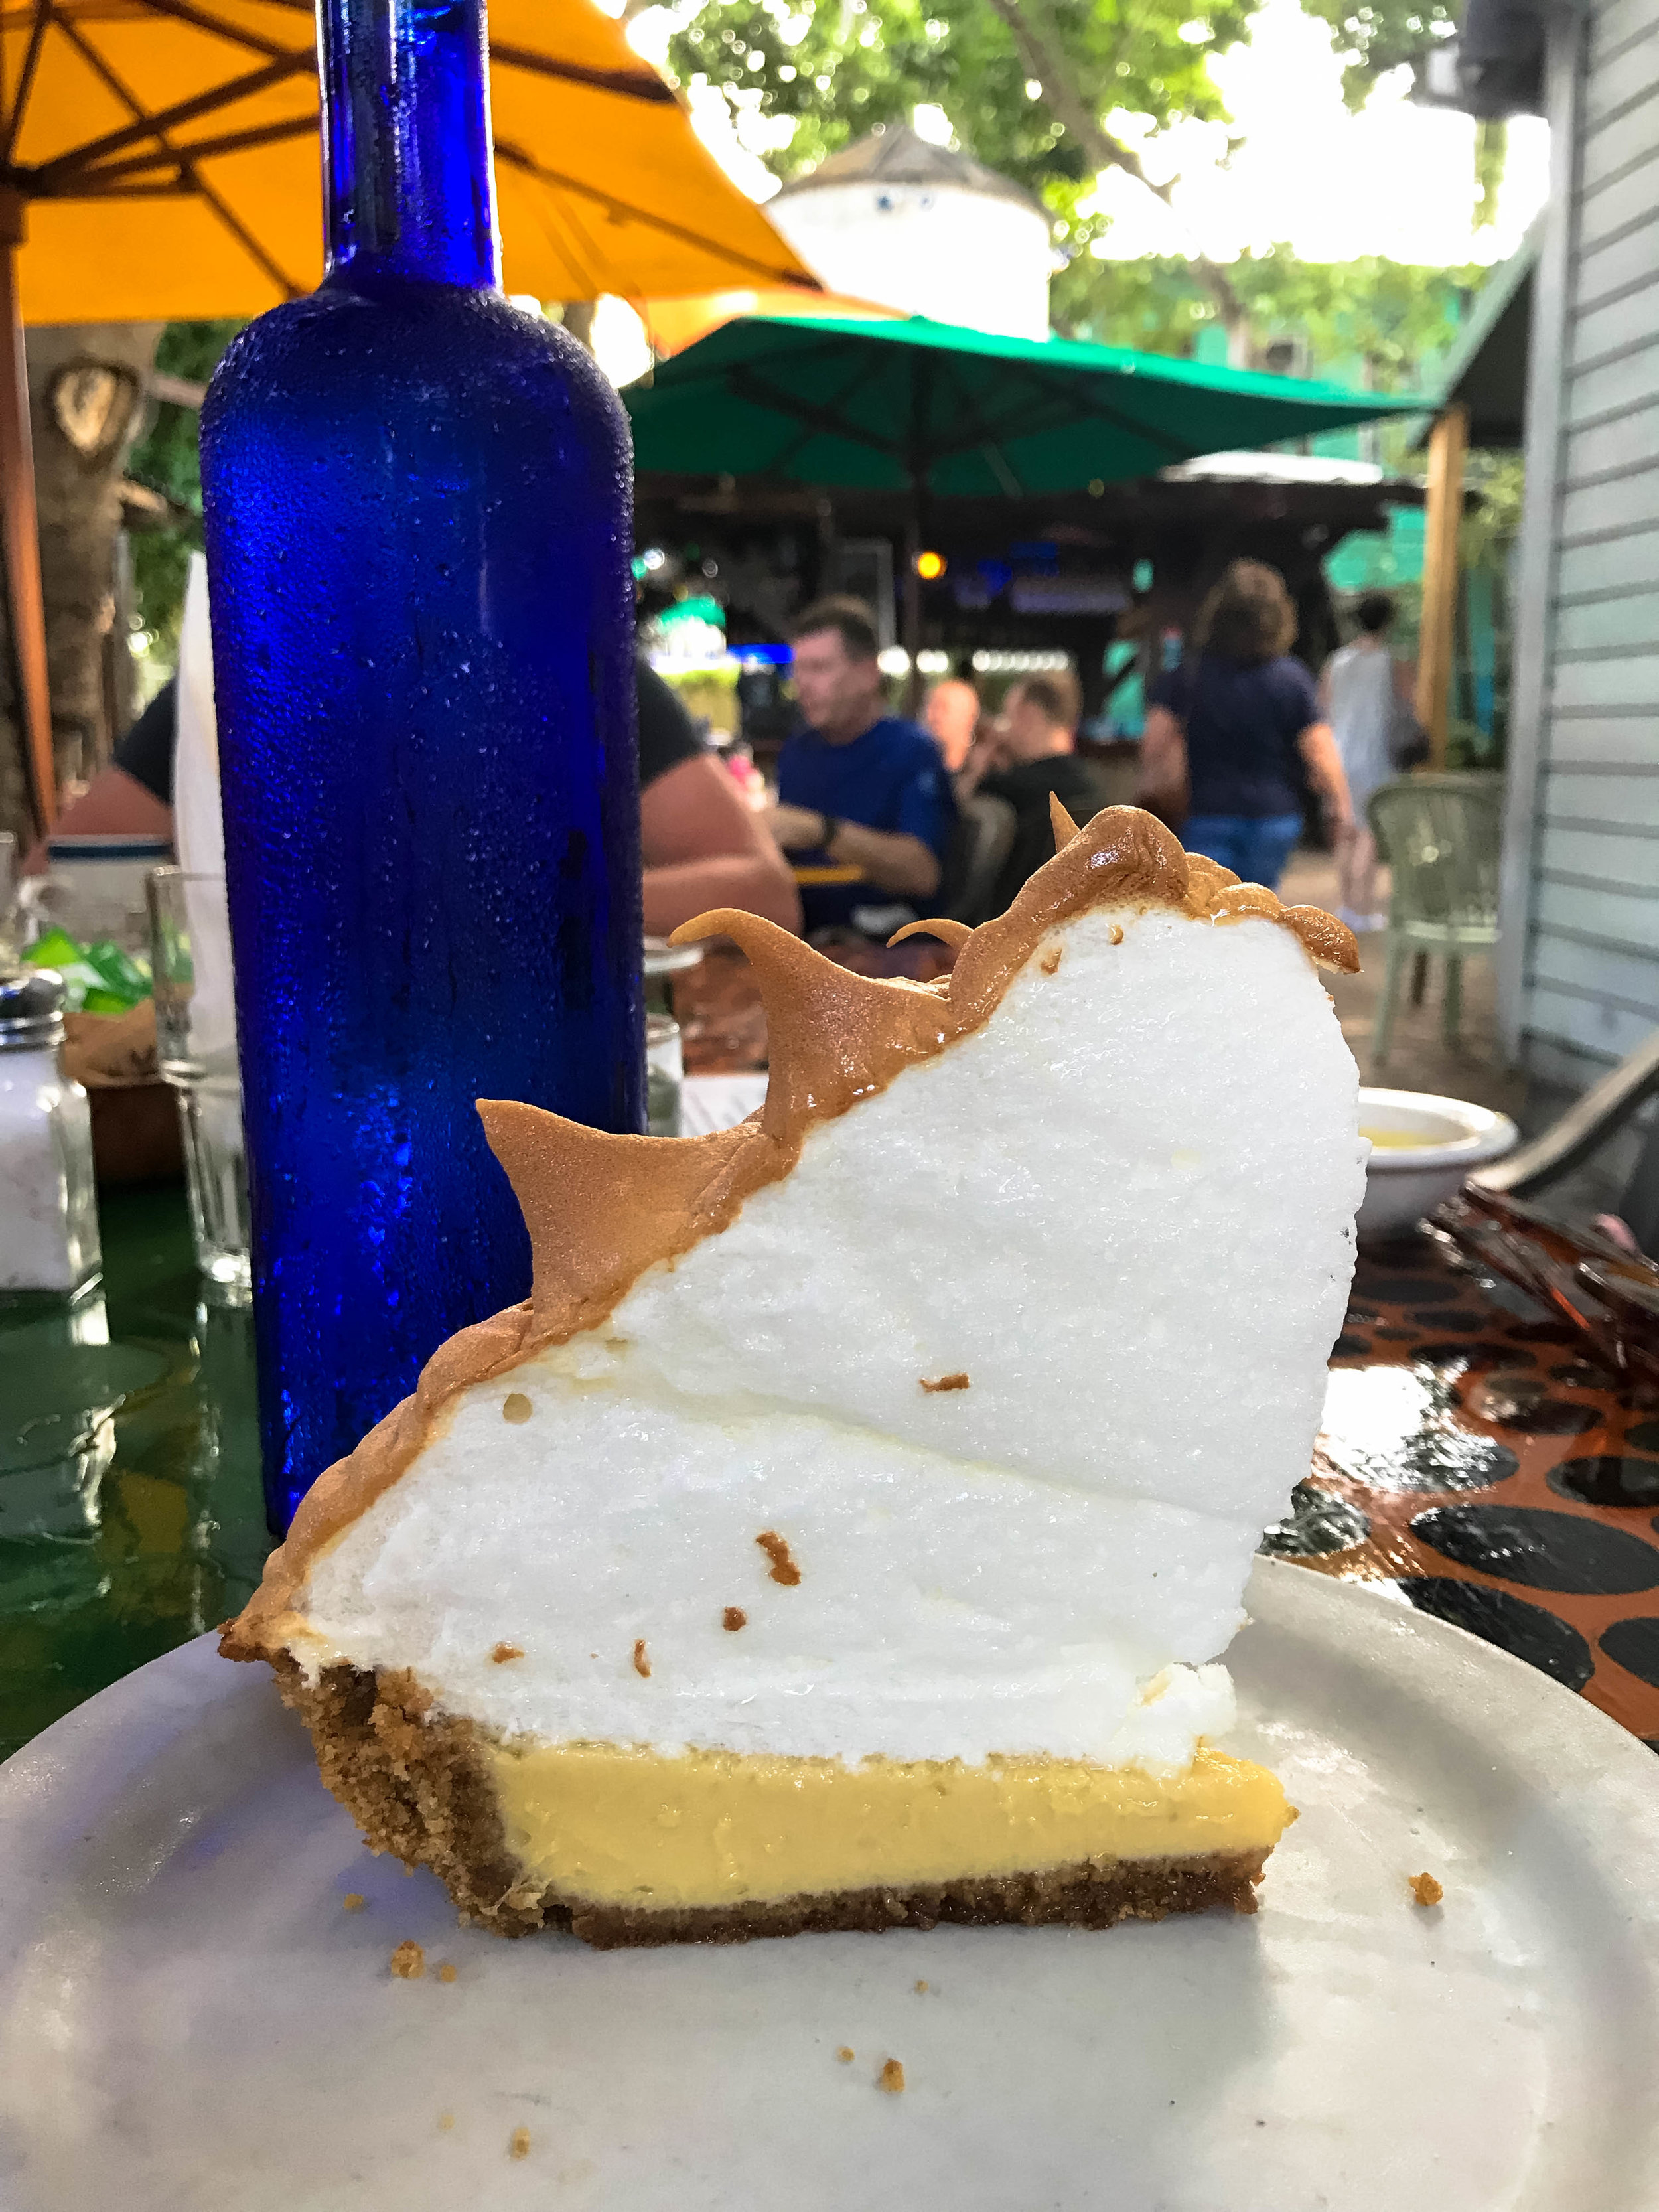 Our very last piece of Key LIme Pie while visiting the Florida Keys.